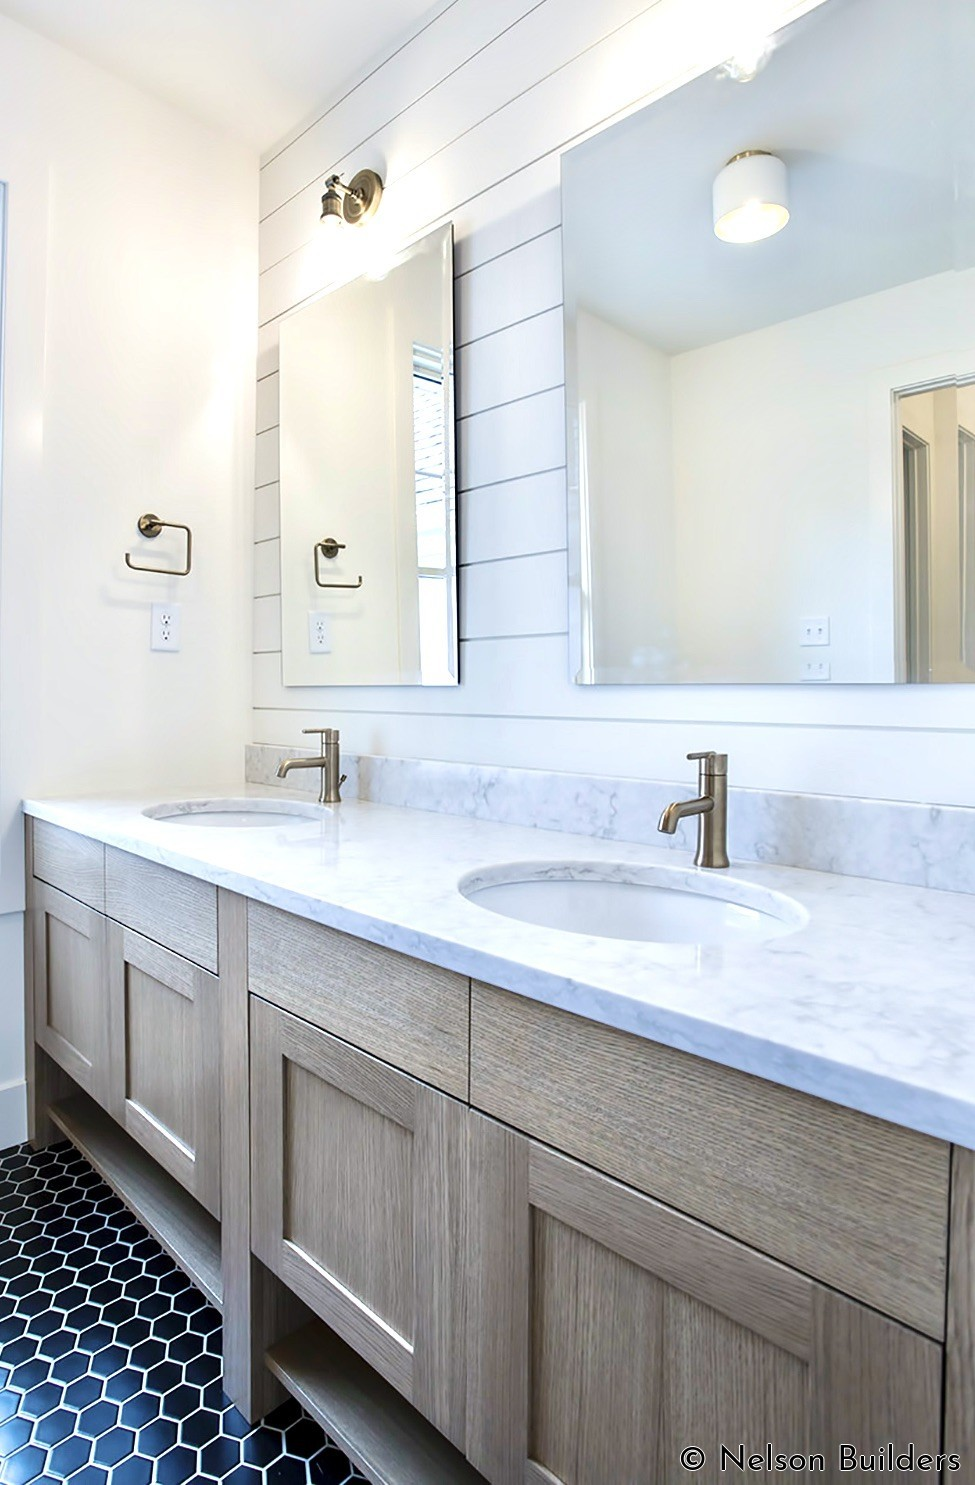 The kids bath features custom made white oak cabinets in front of a shiplap wall. Champagne bronze fixtures accent the clean color pallet.